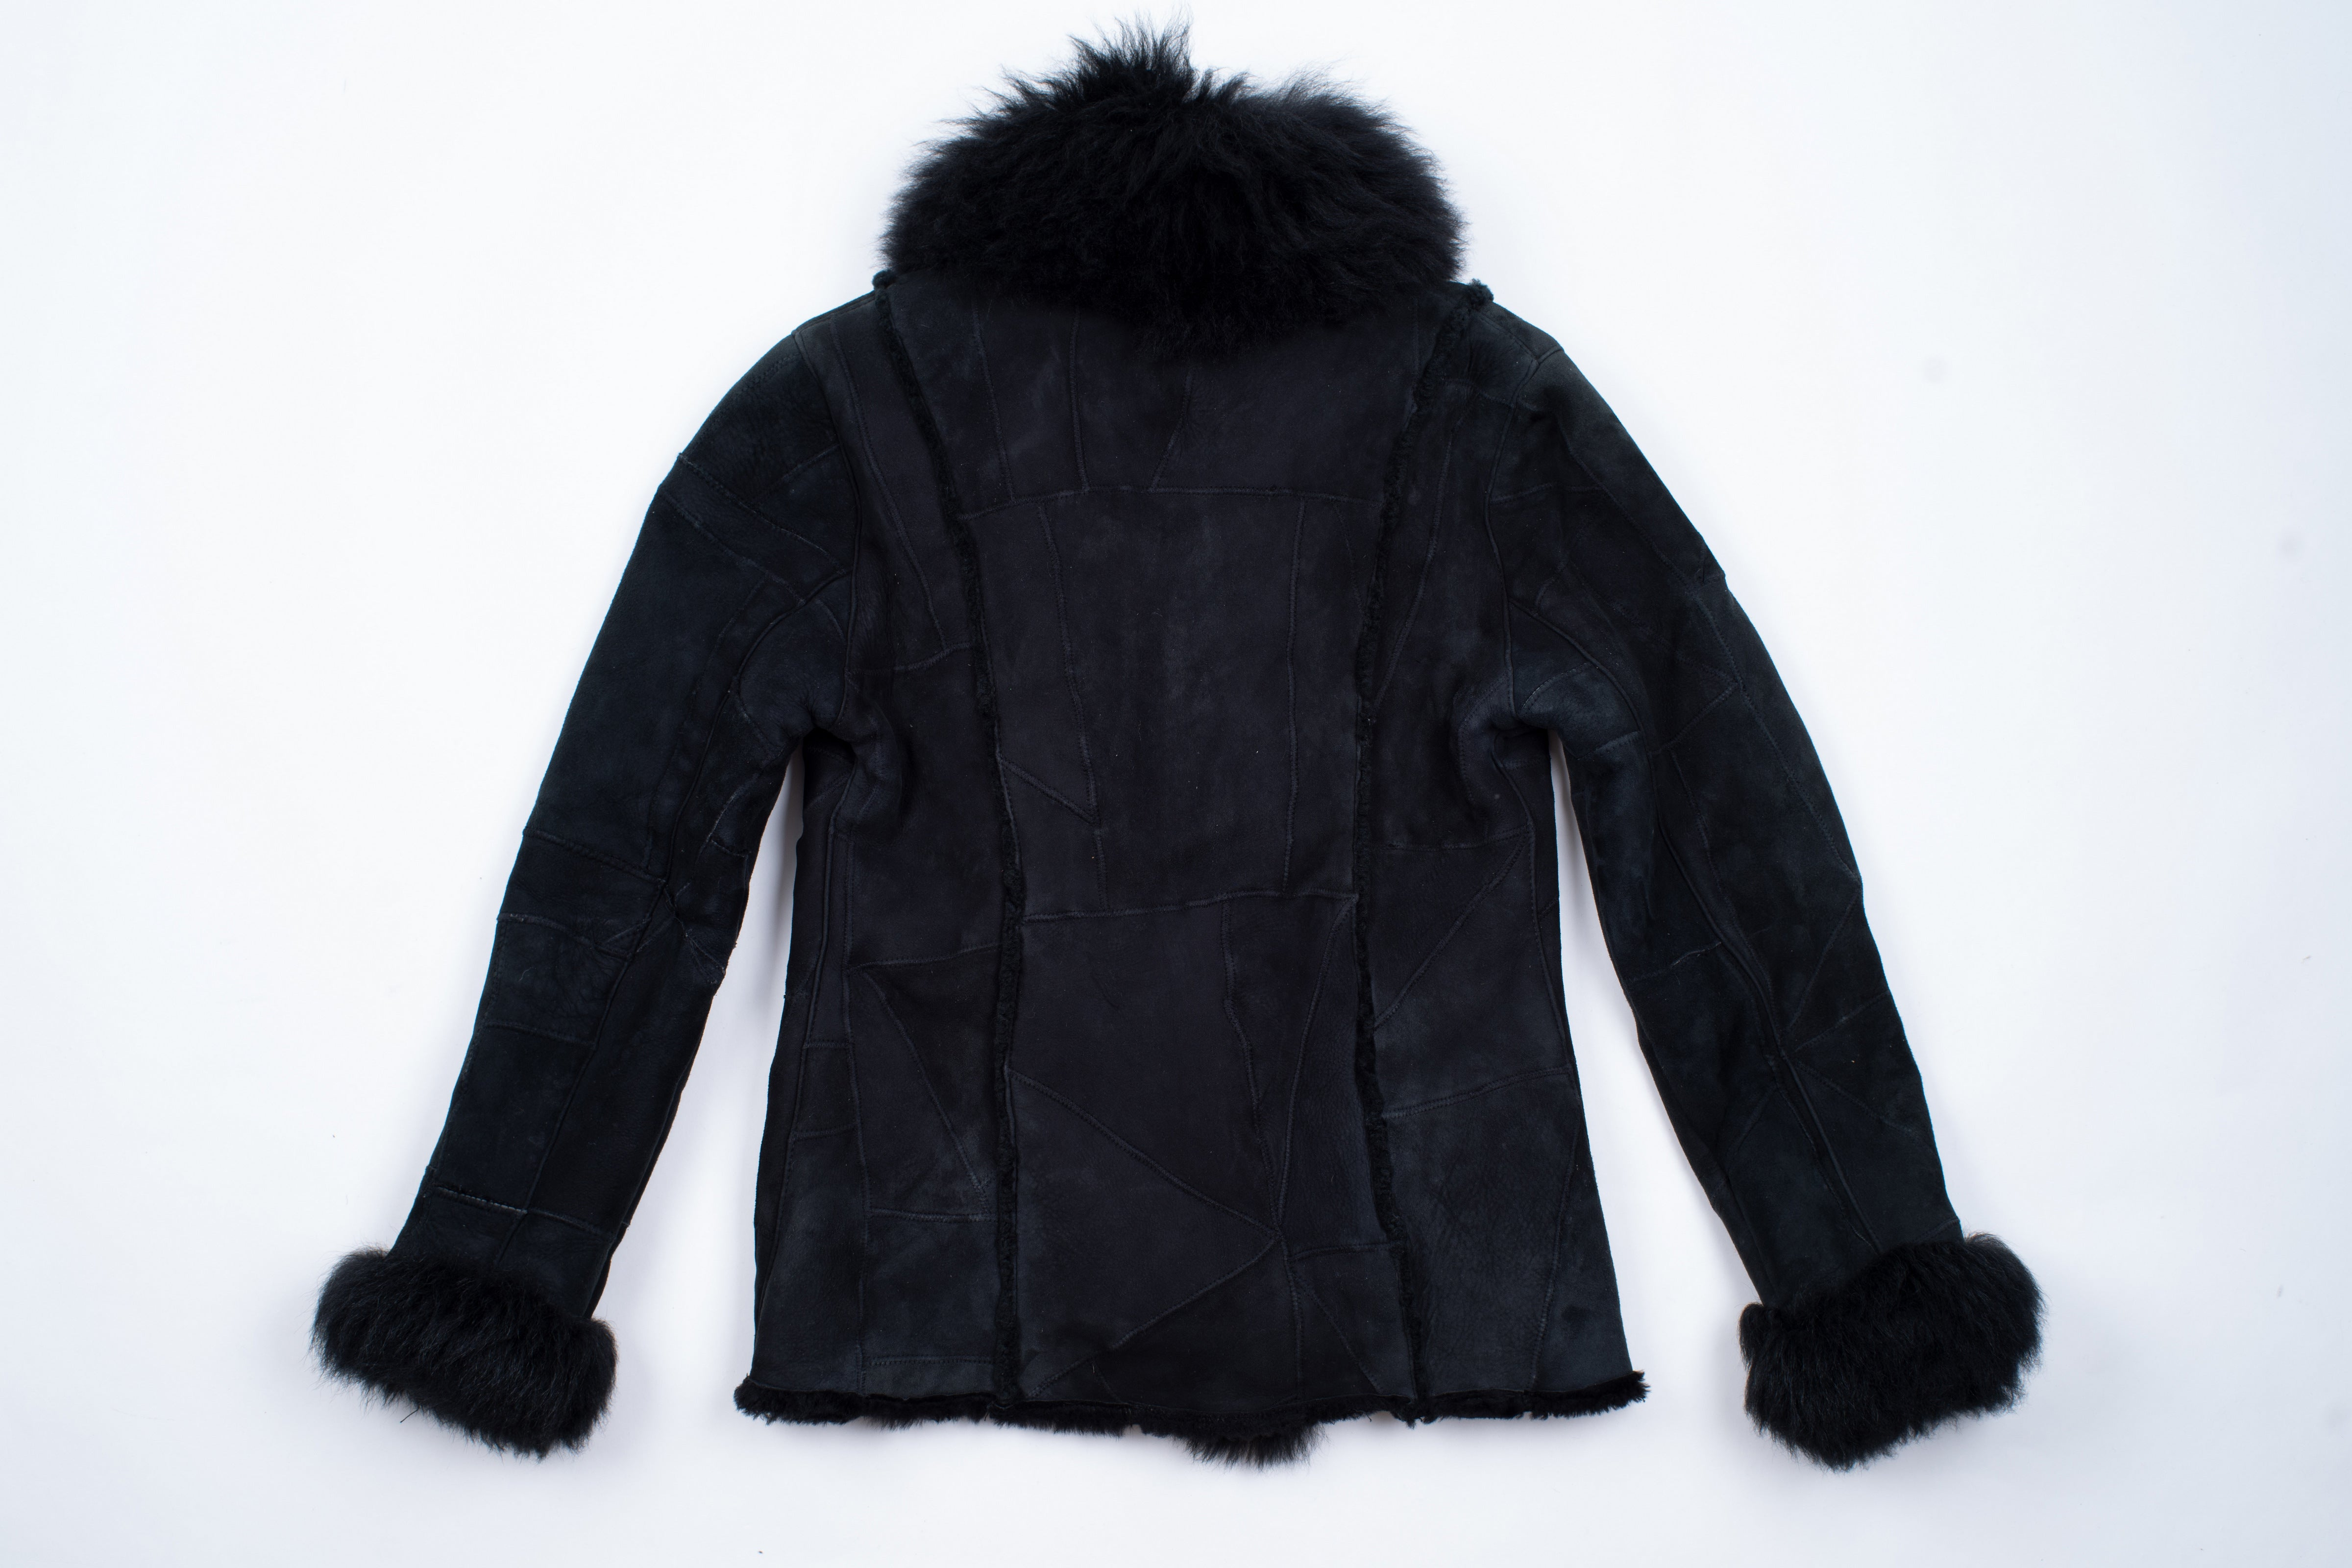 Woman's Black Patchwork Shearling Jacket With Shawl Fur Collar, M